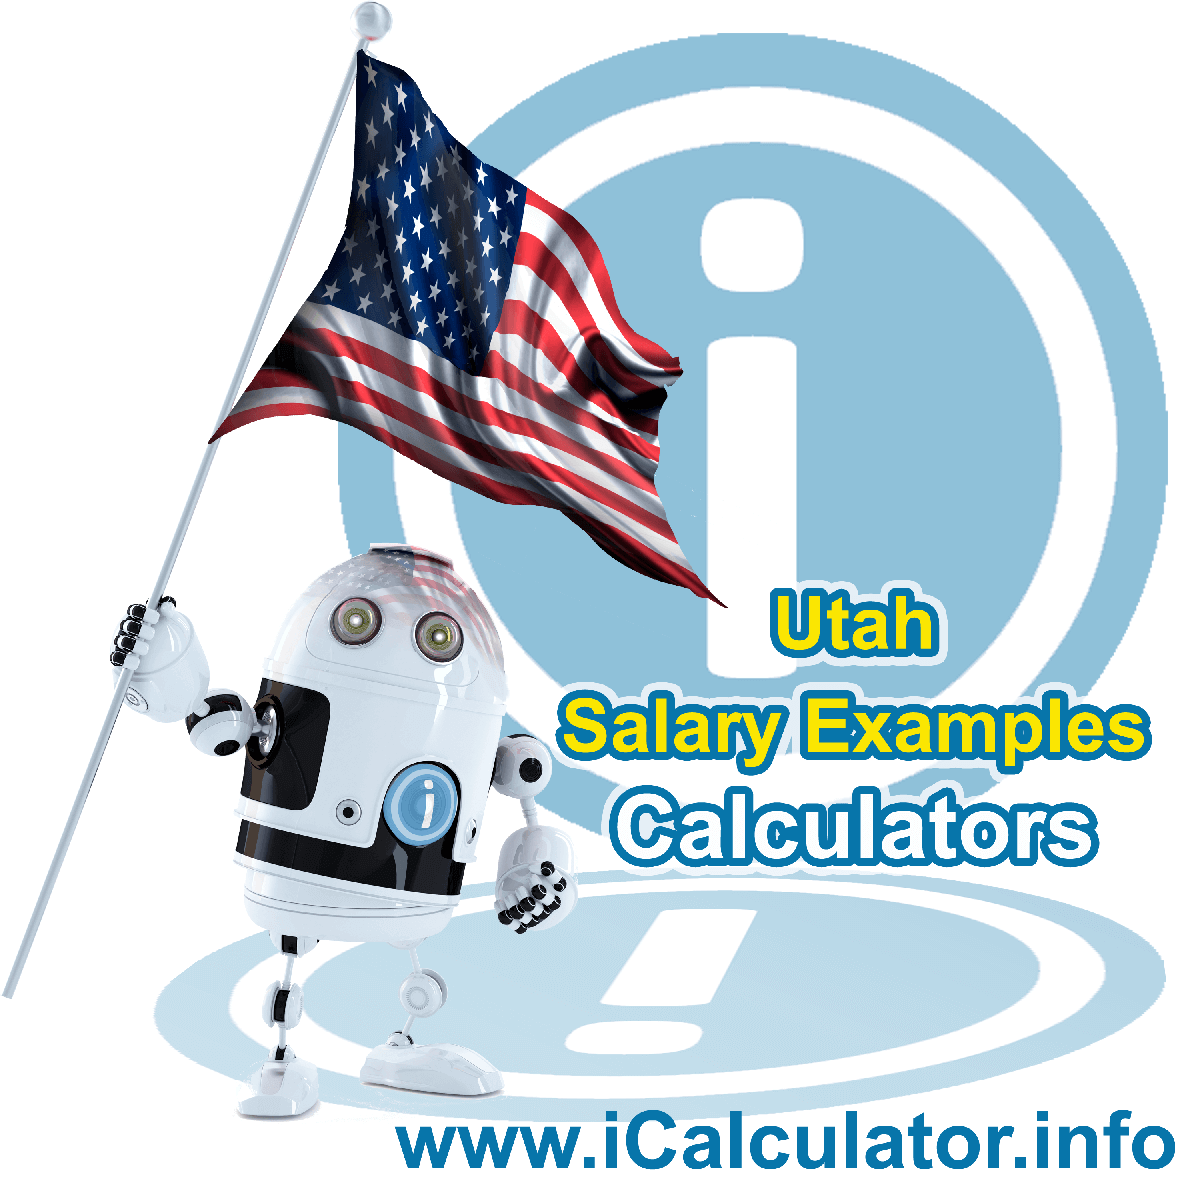 Utah Salary Example for $120,000.00 in 2020 | iCalculator | $120,000.00 salary example for employee and employer paying Utah State tincome taxes. Detailed salary after tax calculation including Utah State Tax, Federal State Tax, Medicare Deductions, Social Security, Capital Gains and other income tax and salary deductions complete with supporting Utah state tax tables